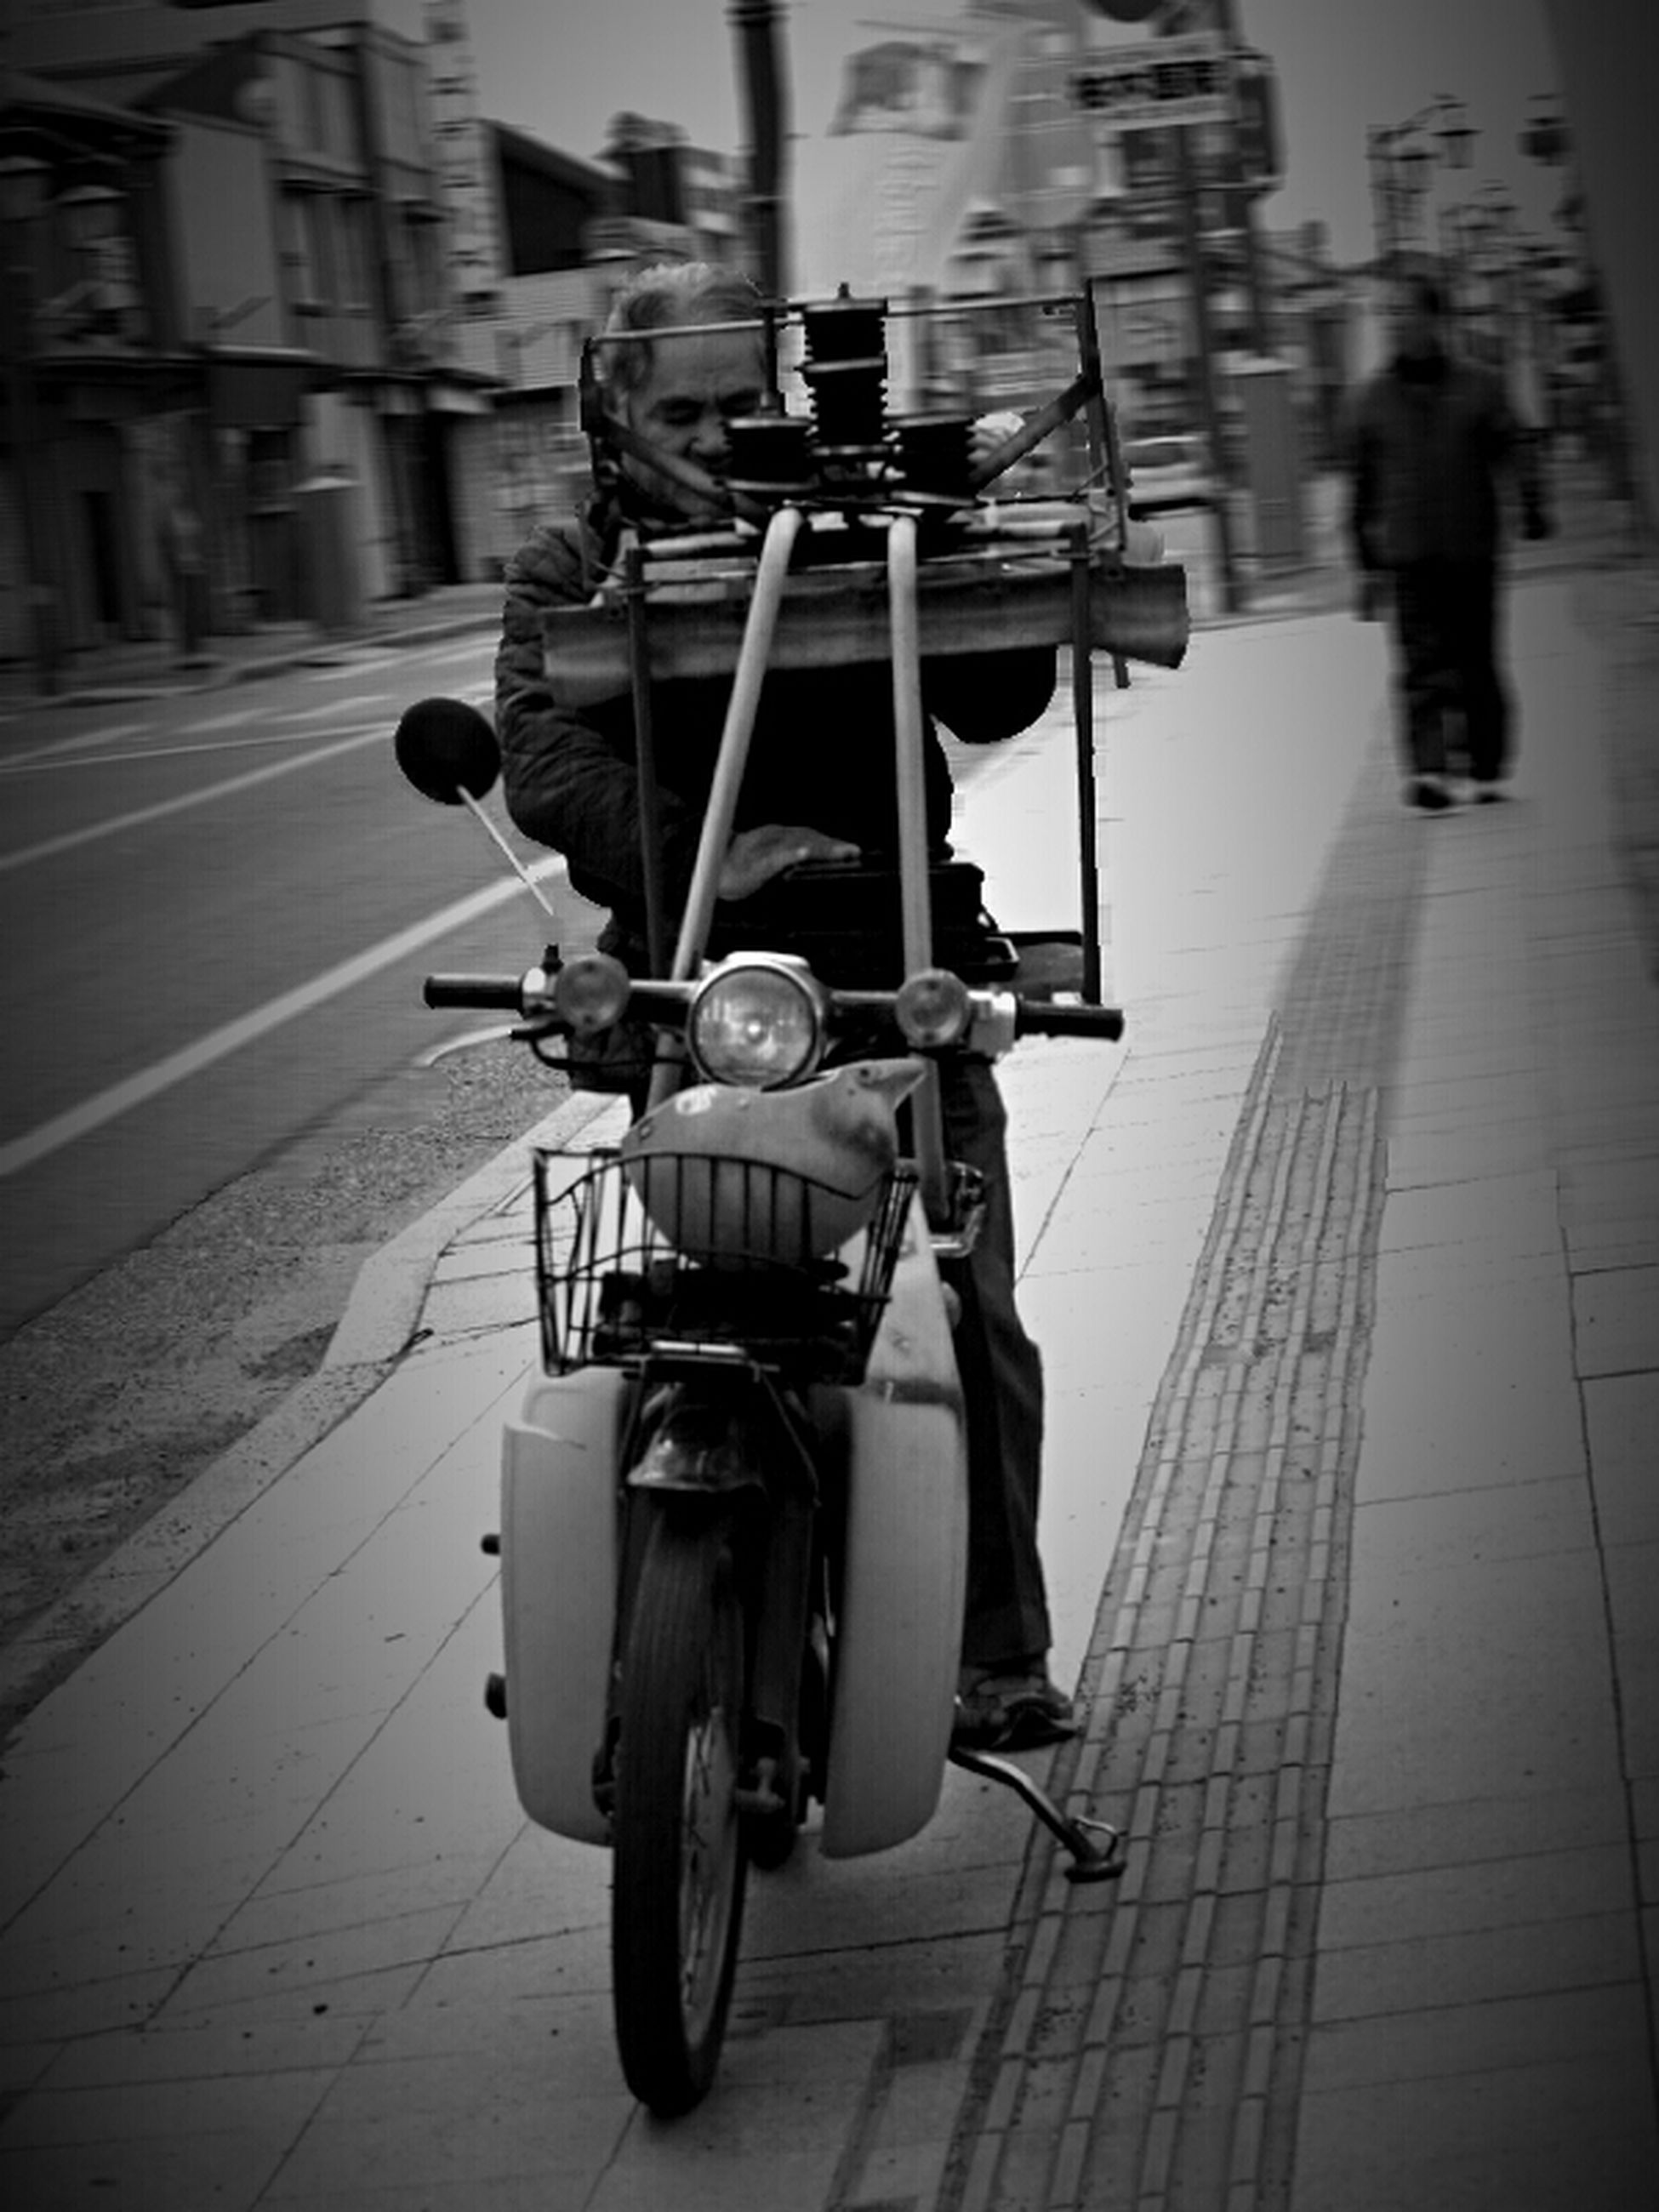 transportation, mode of transport, street, building exterior, bicycle, men, architecture, land vehicle, built structure, lifestyles, city, city life, travel, full length, walking, incidental people, on the move, rear view